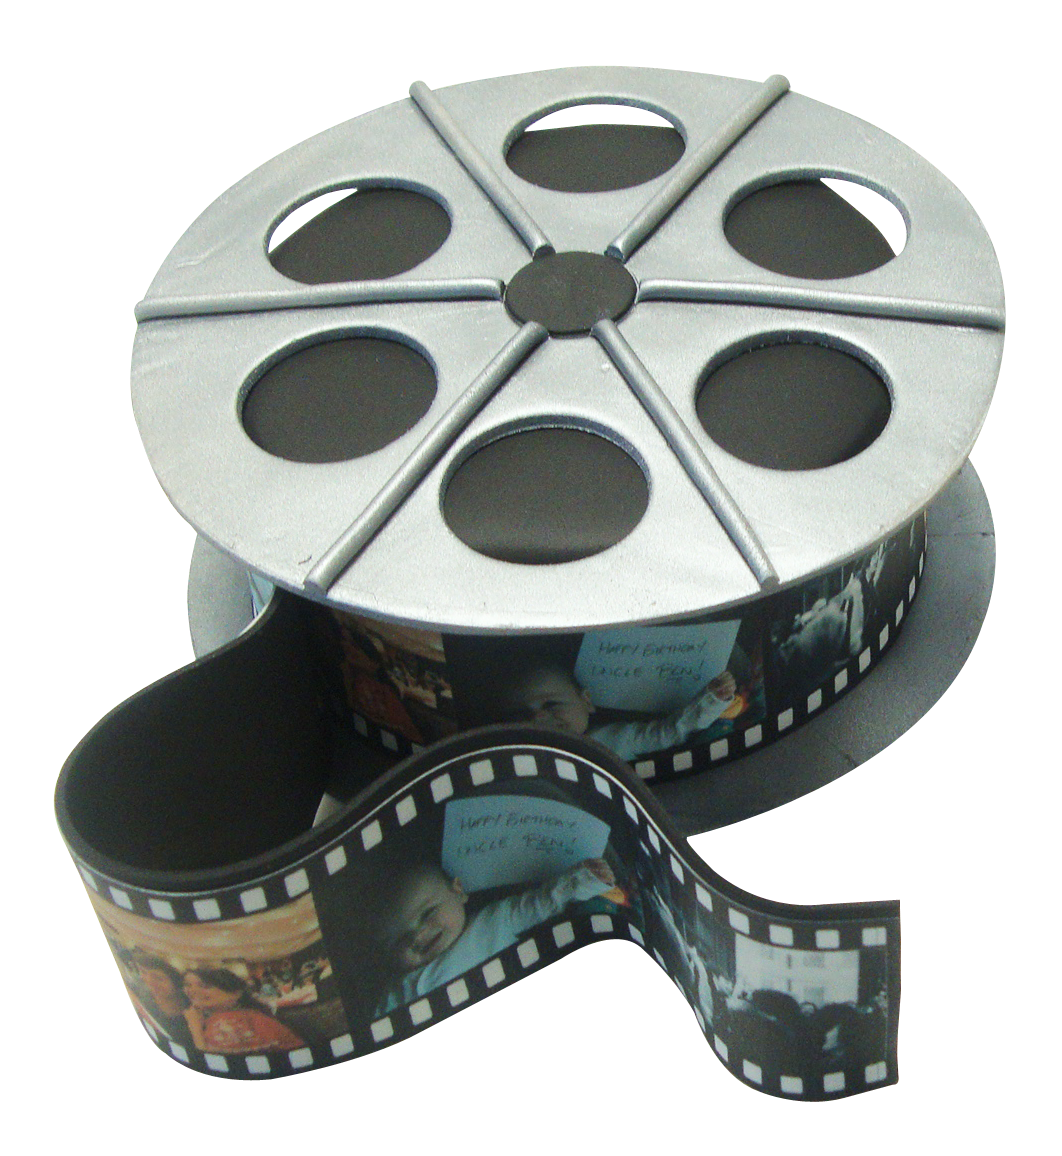 film reel png transparent image pngpix #36147